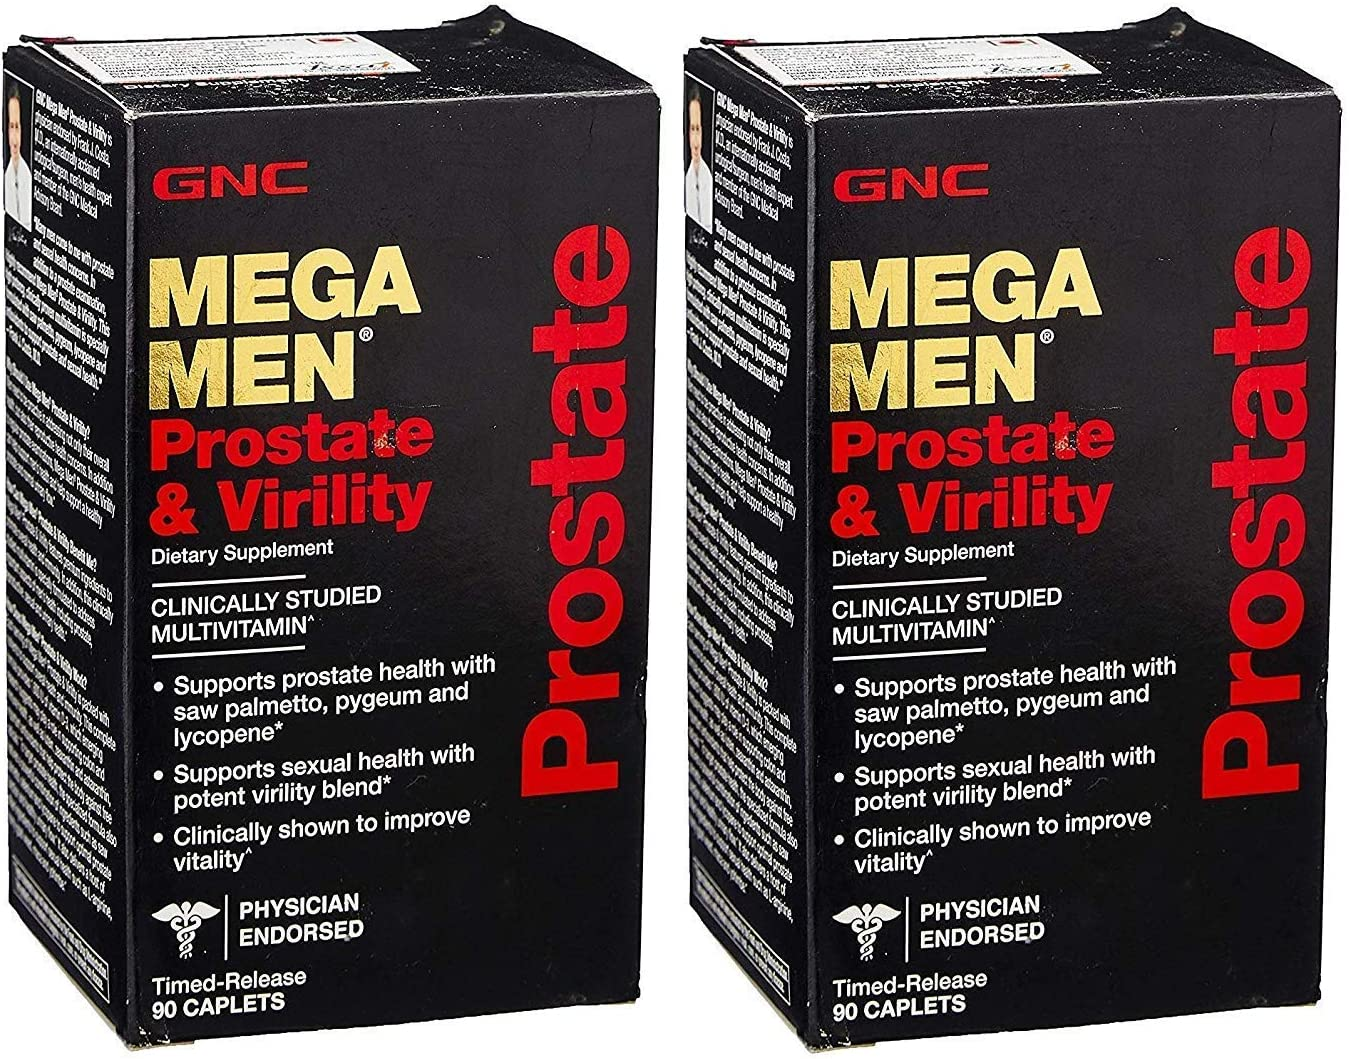 GNC Mega Men Prostate and Virility 90 Caps (Two Bottles of 90 Caplets)